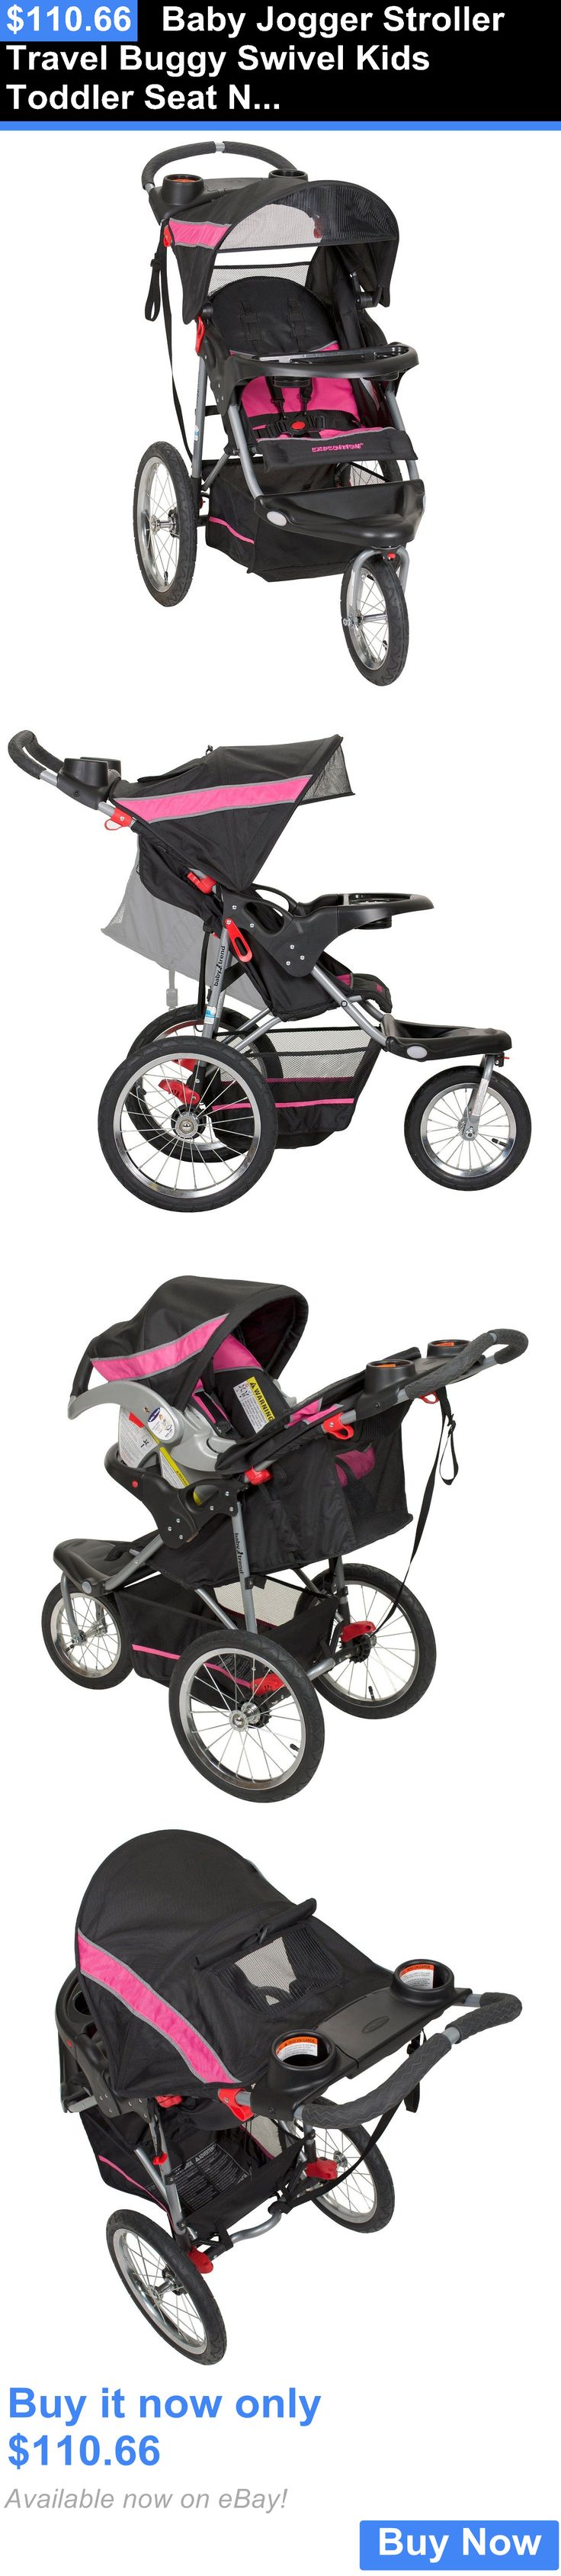 baby and kid stuff: Baby Jogger Stroller Travel Buggy Swivel Kids Toddler Seat New BUY IT NOW ONLY: $110.66